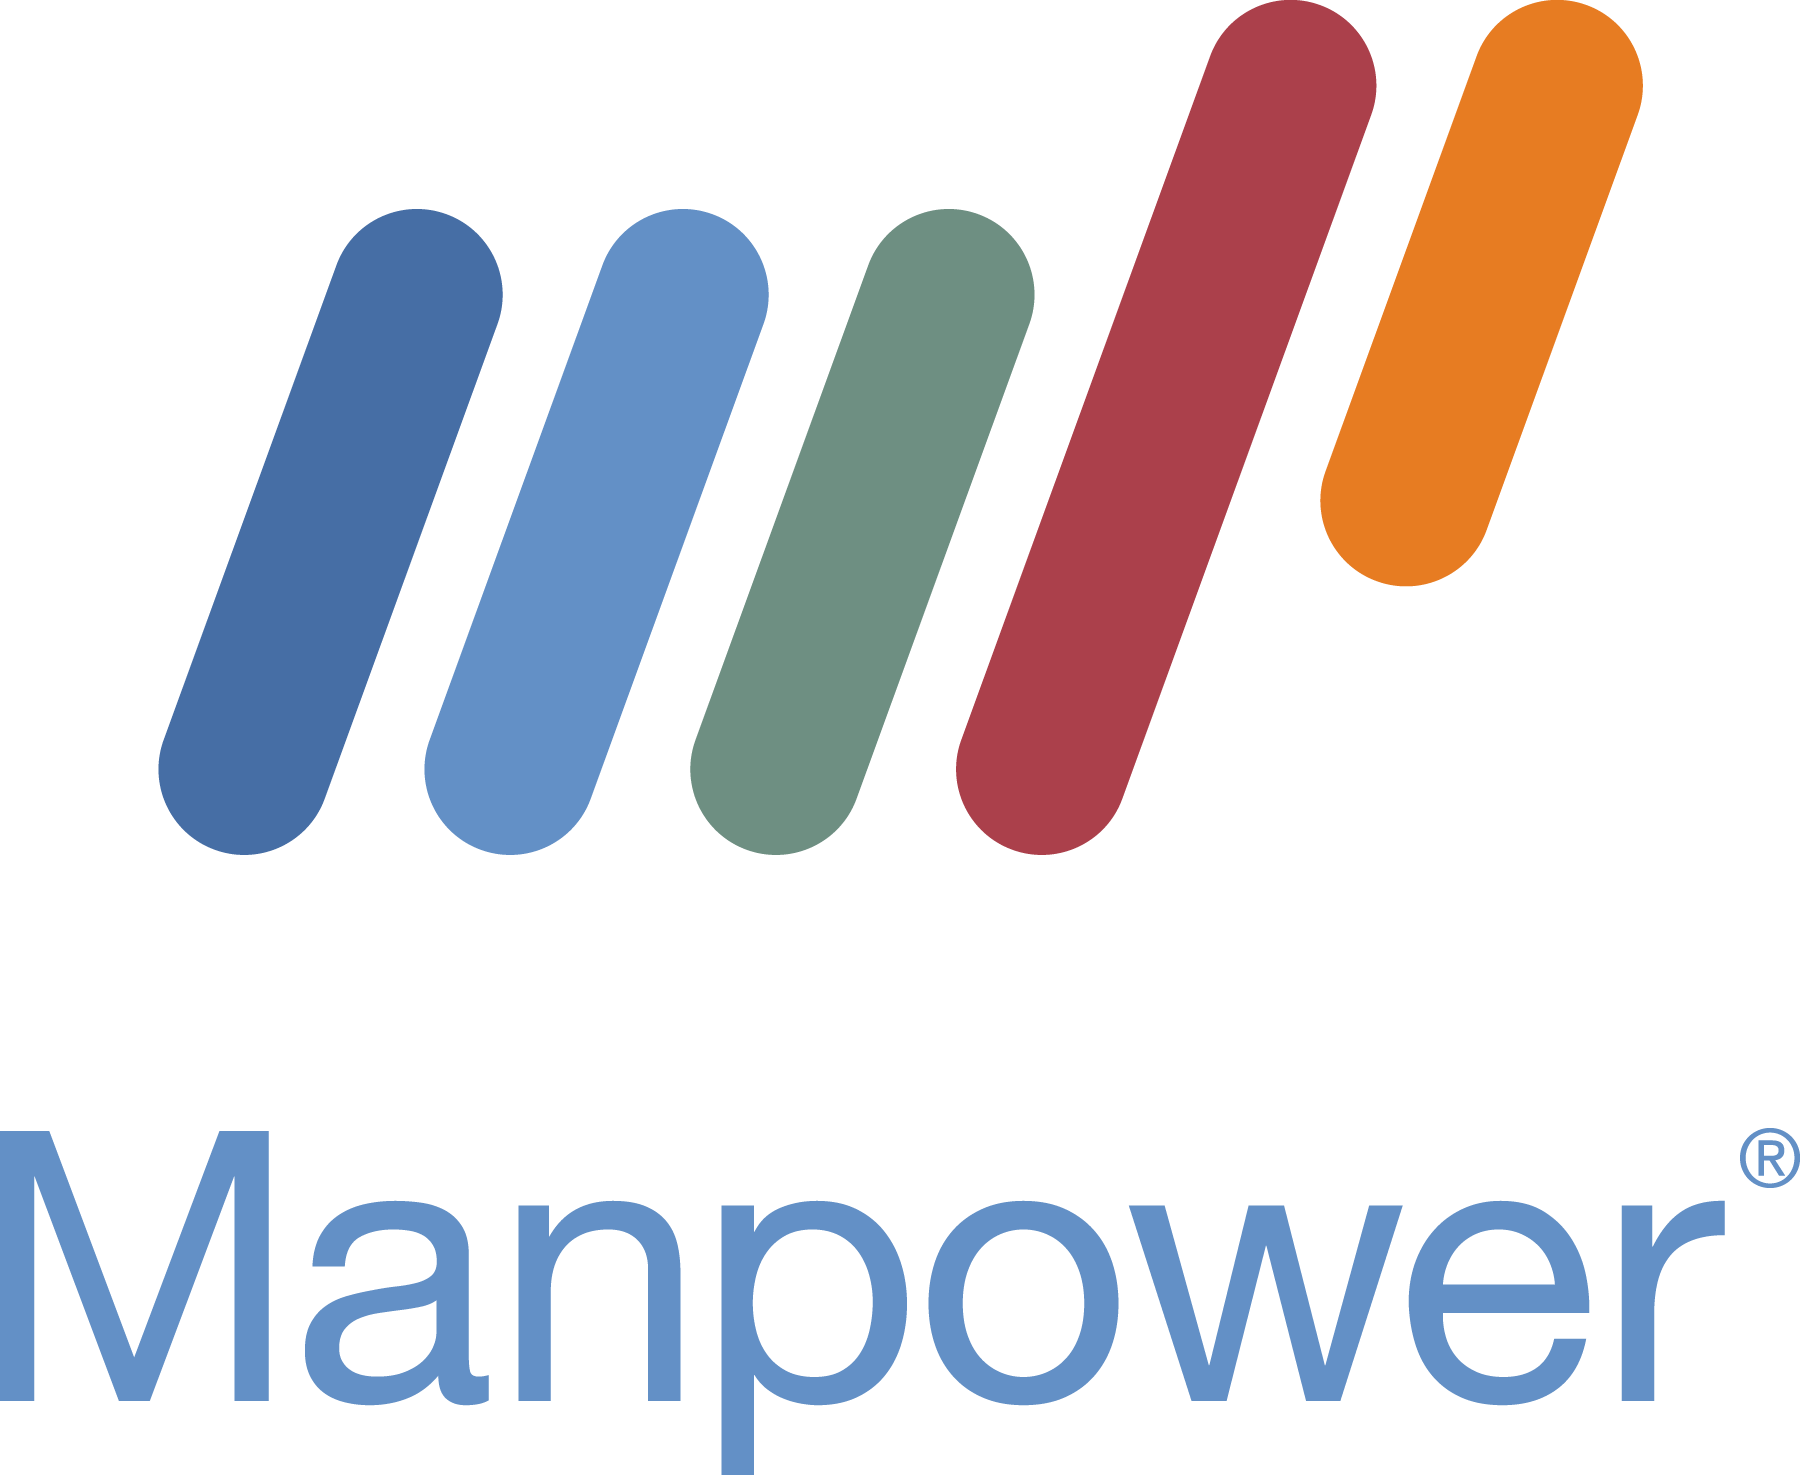 Manpower Web Stacked Logo for Dark Background